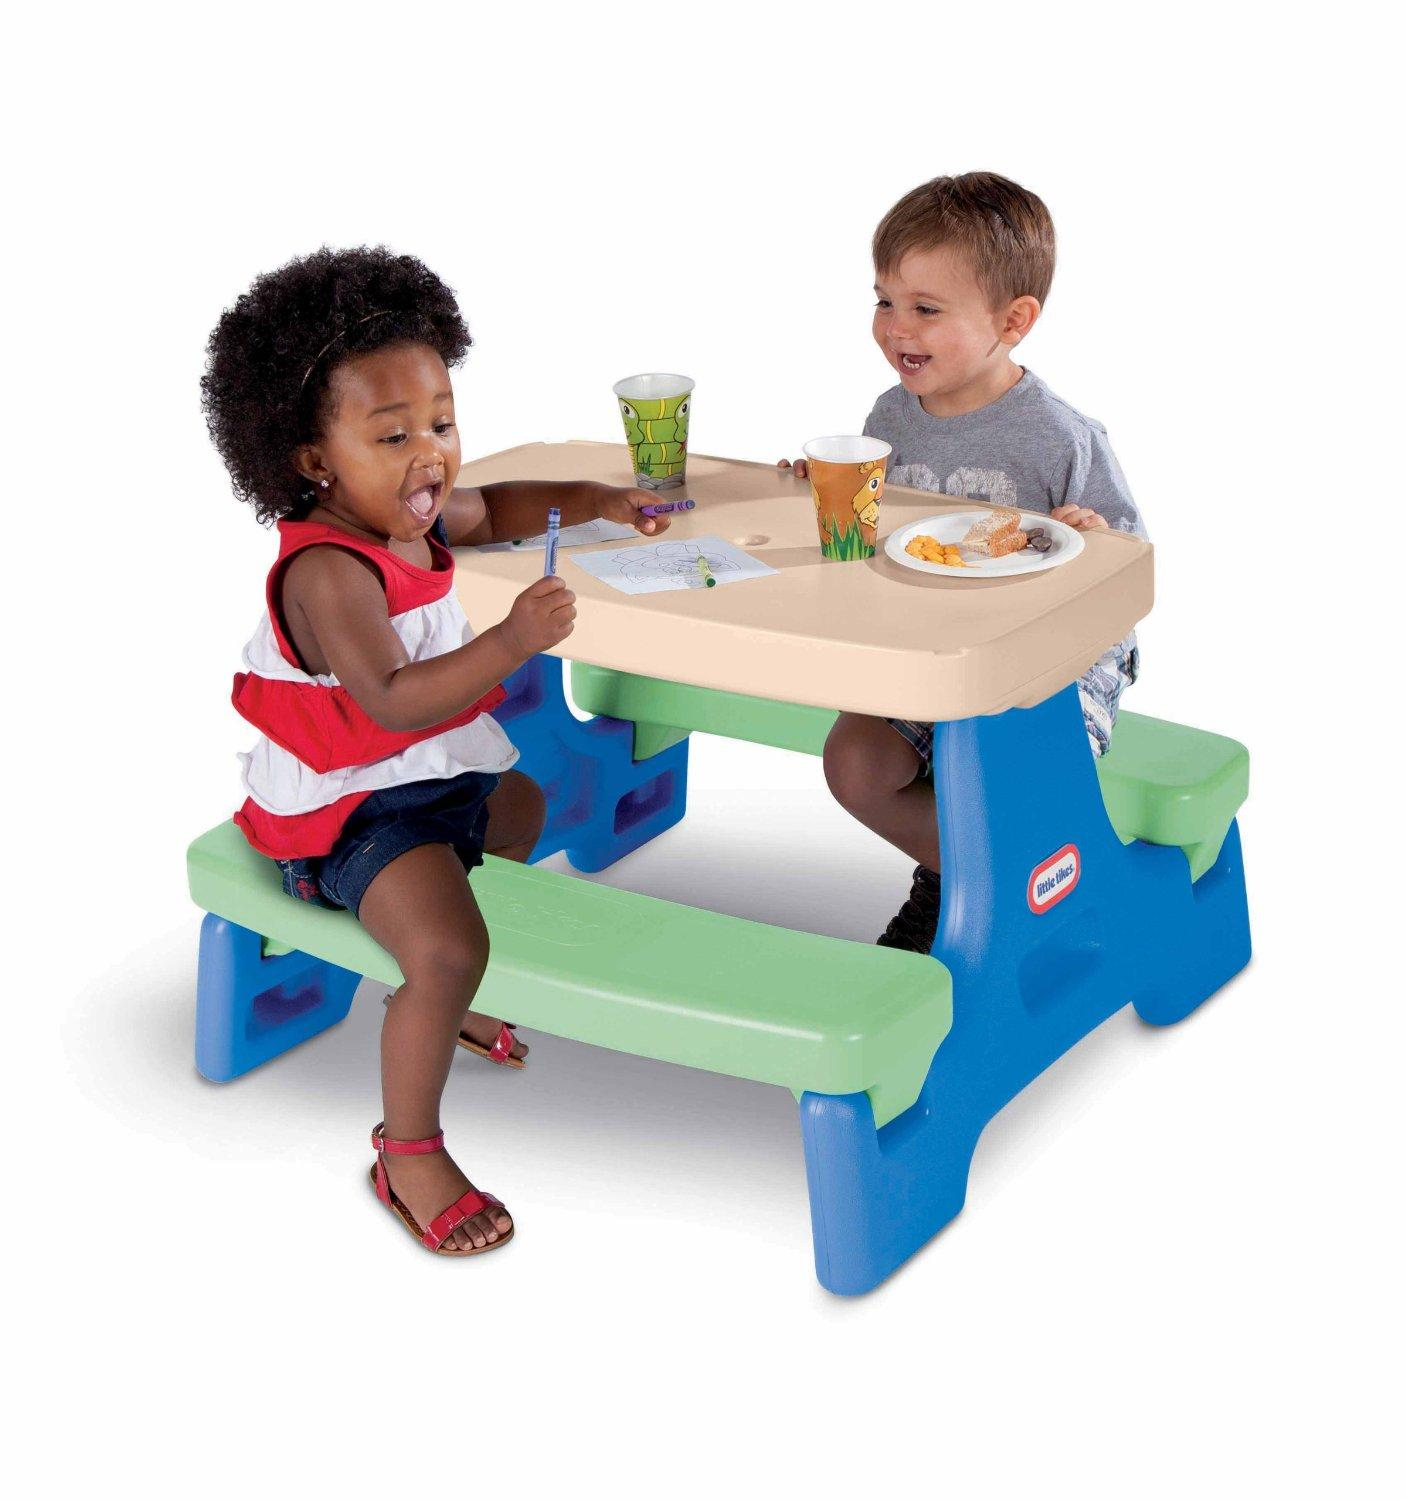 Lowest Price Ever! Little Tikes Easy Store Junior Play Table